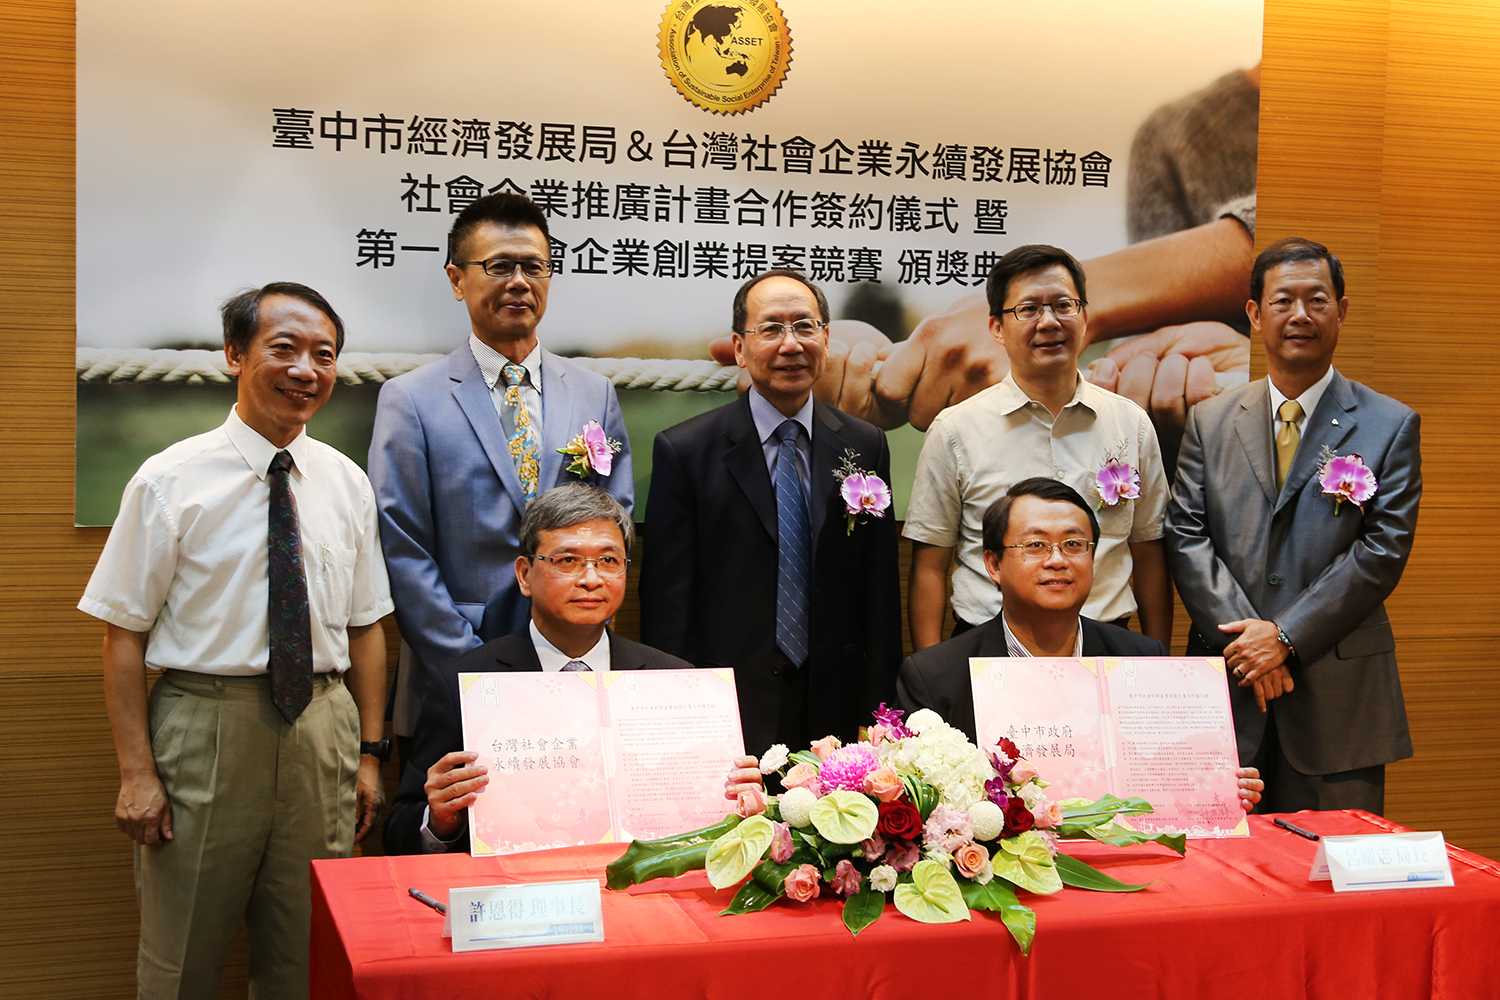 Signing of MOU between theTaiwan Social Enterprise Sustainability and Development Association and the Economic Development Bureau of the Taichung City Government